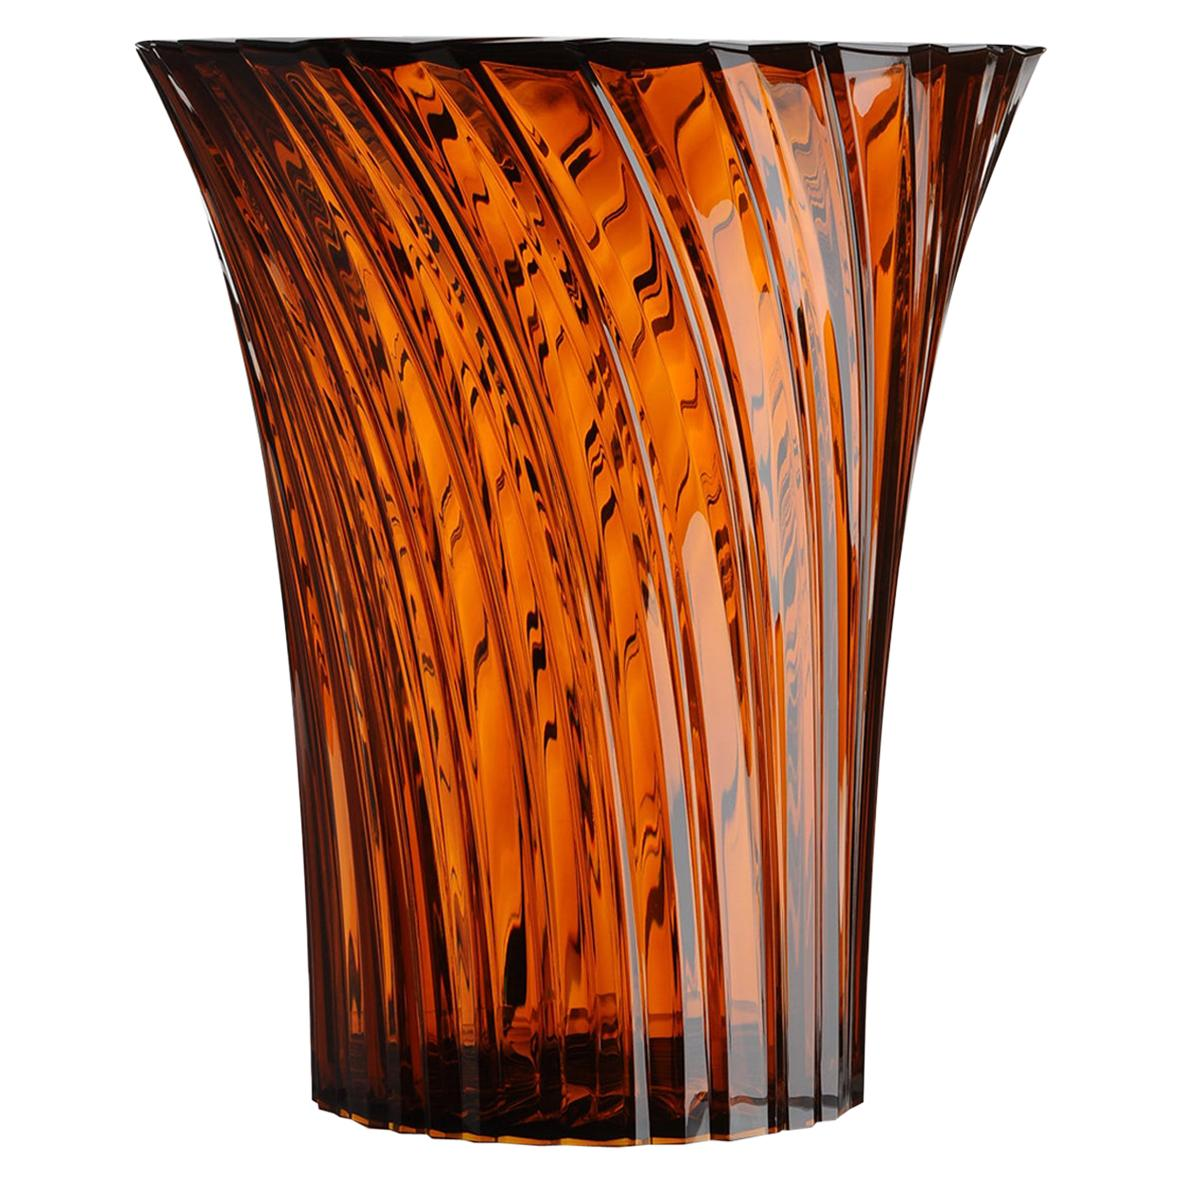 Kartell Sparkle Stool in Amber by Tokujin Yoshioka